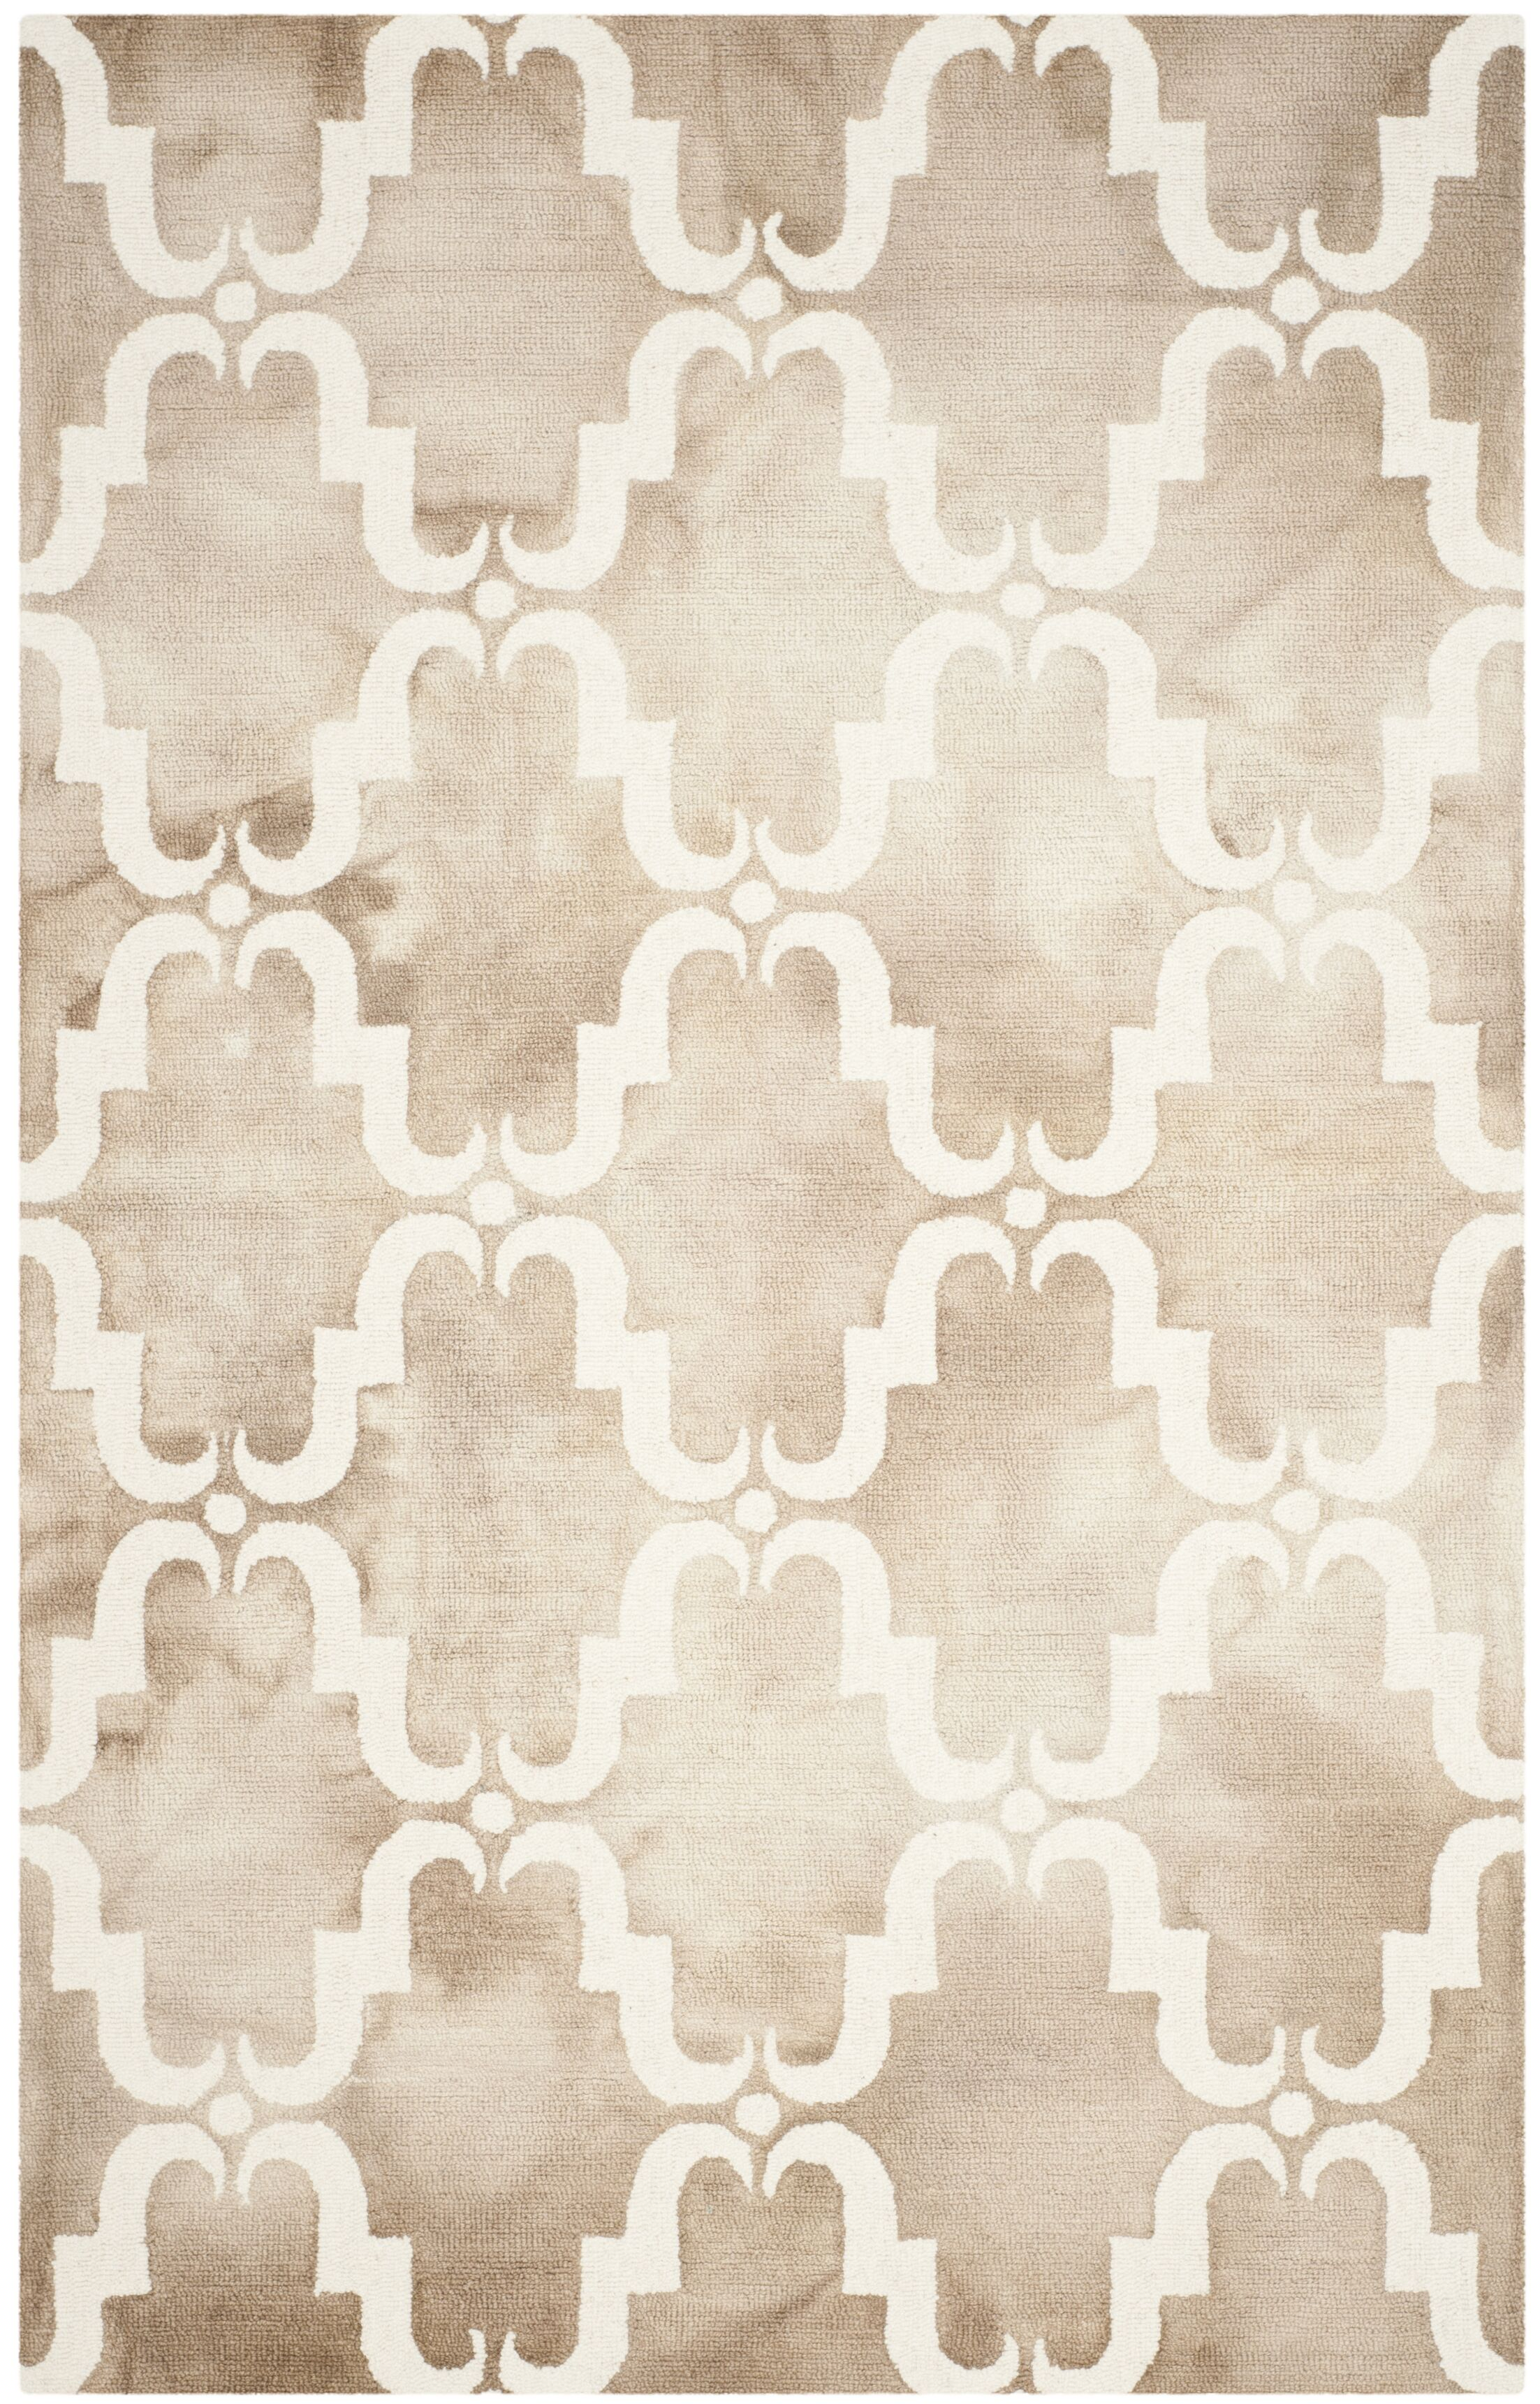 Hand-Tufted Dip Beige/Ivory Area Rug Rug Size: Rectangle 9' x 12'